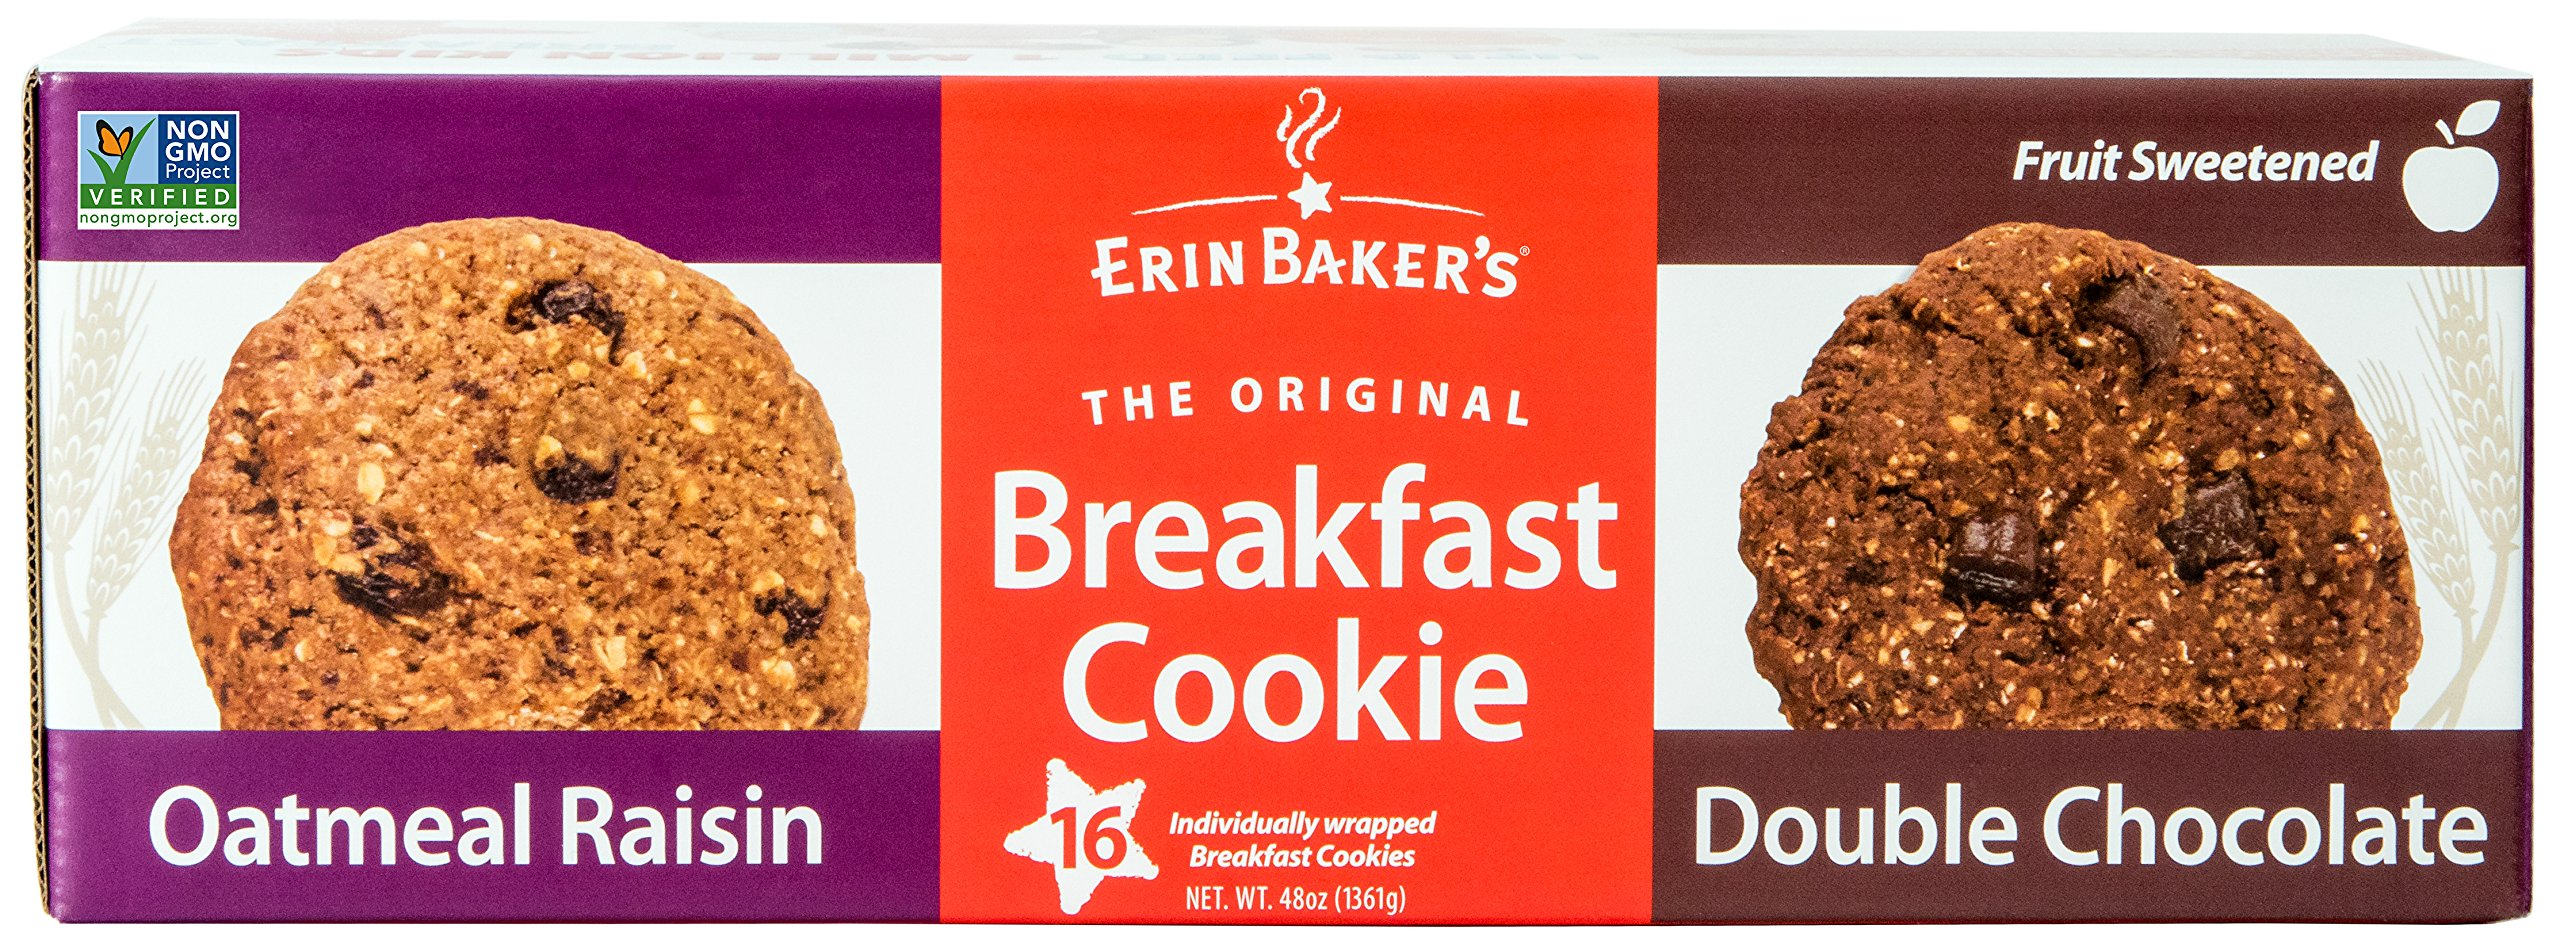 Erin Baker's Breakfast Cookies, Oatmeal Raisin and Double Chocolate Variety, Whole Grain, Non-GMO, 3-ounce (Pack of 16)